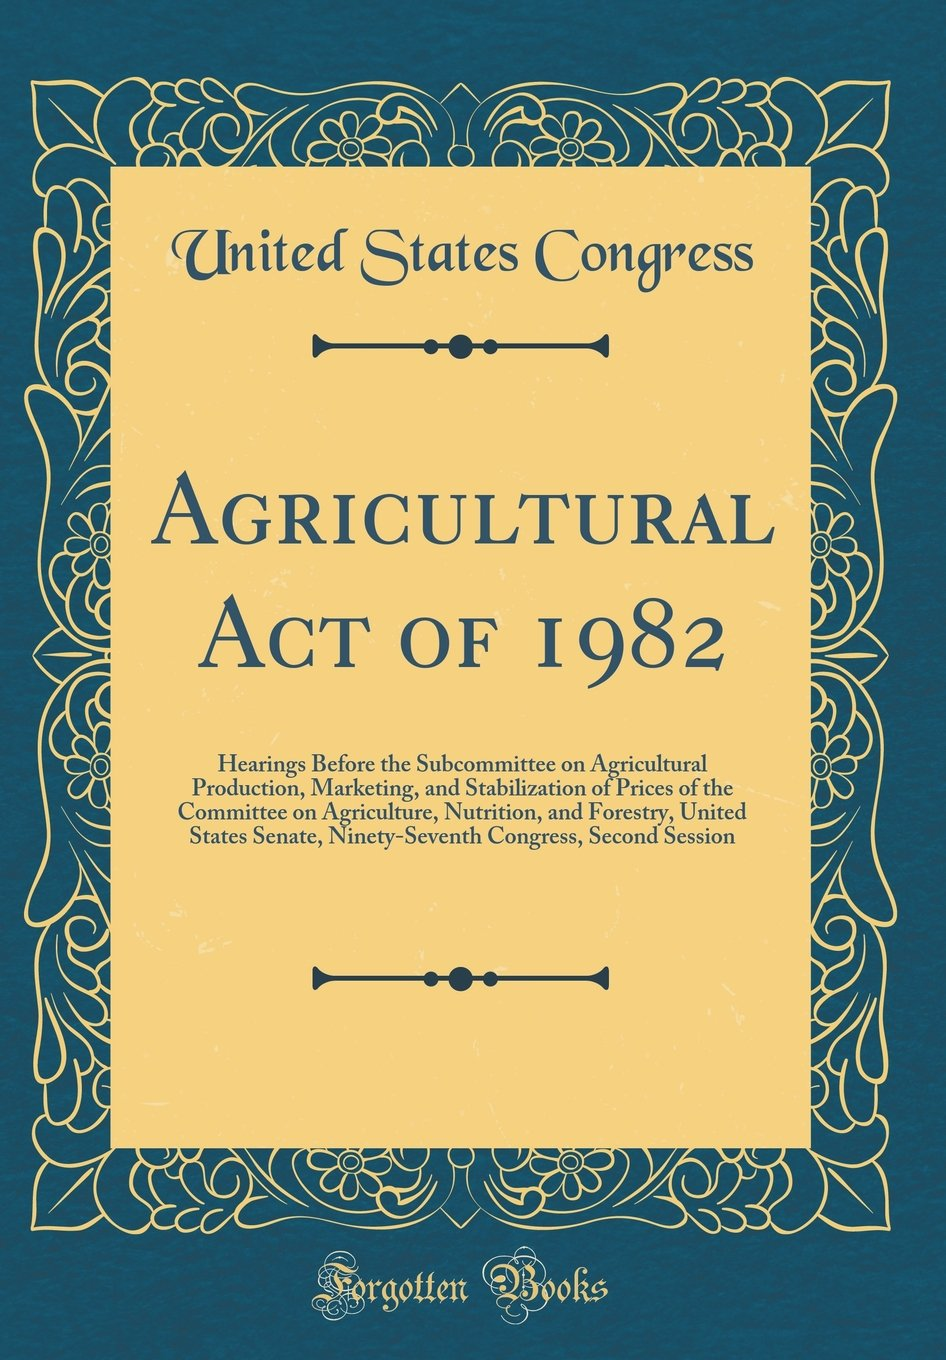 Read Online Agricultural Act of 1982: Hearings Before the Subcommittee on Agricultural Production, Marketing, and Stabilization of Prices of the Committee on ... Ninety-Seventh Congress, Second Session pdf epub